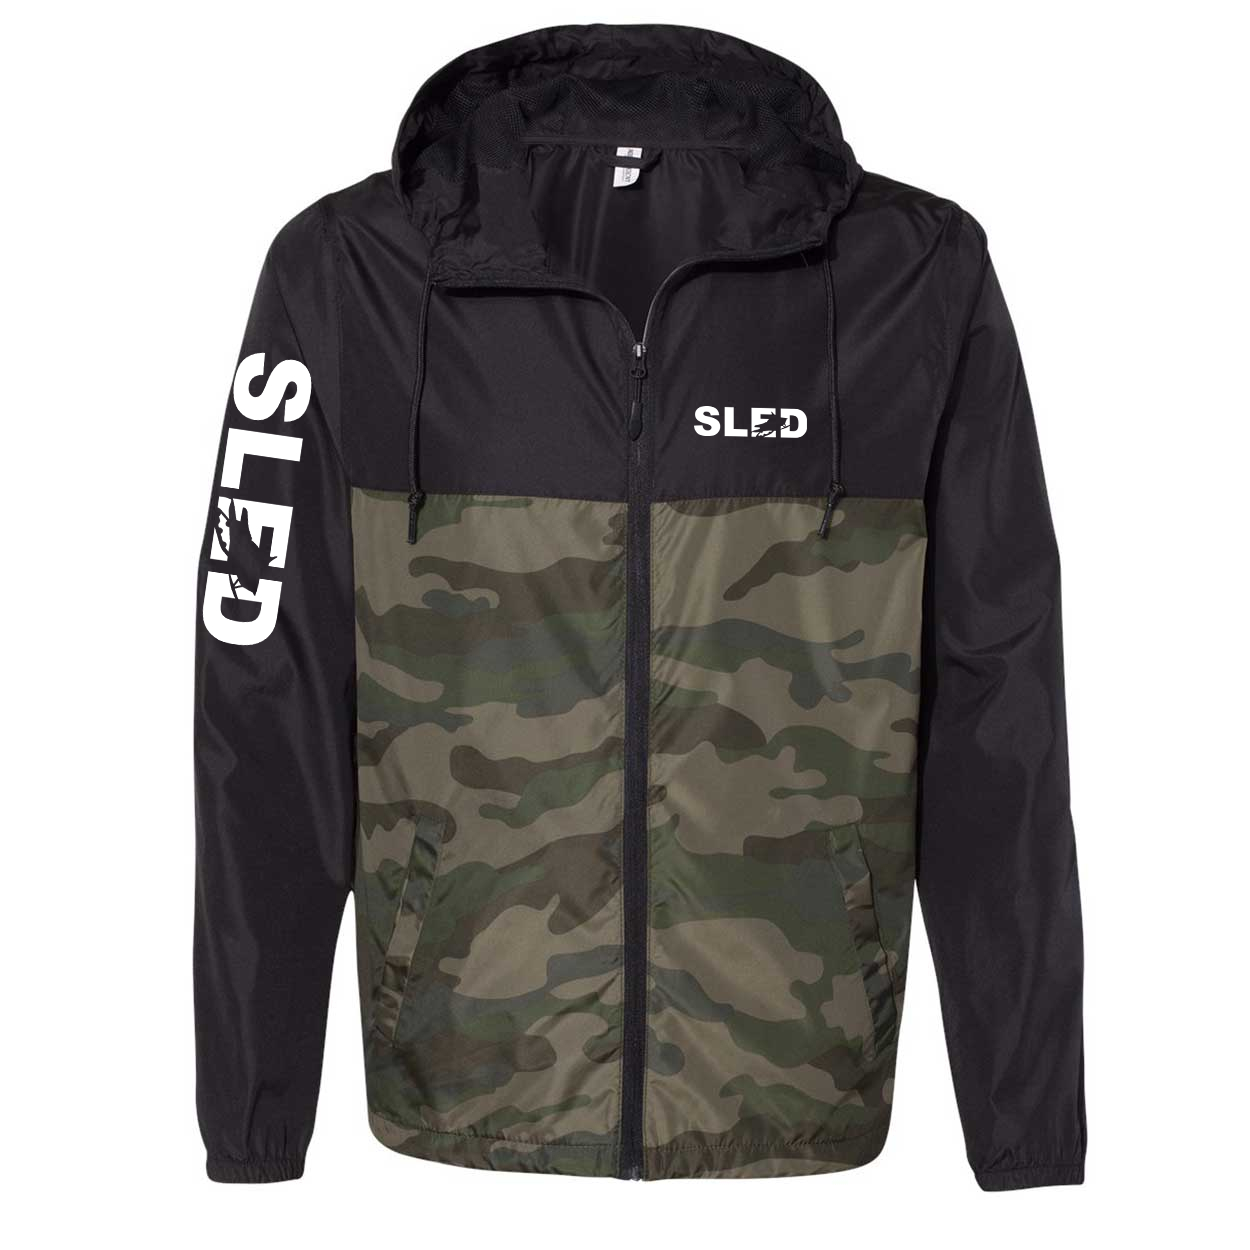 Sled Snowmobile Logo Classic Lightweight Windbreaker Black/Forest Camo (White Logo)